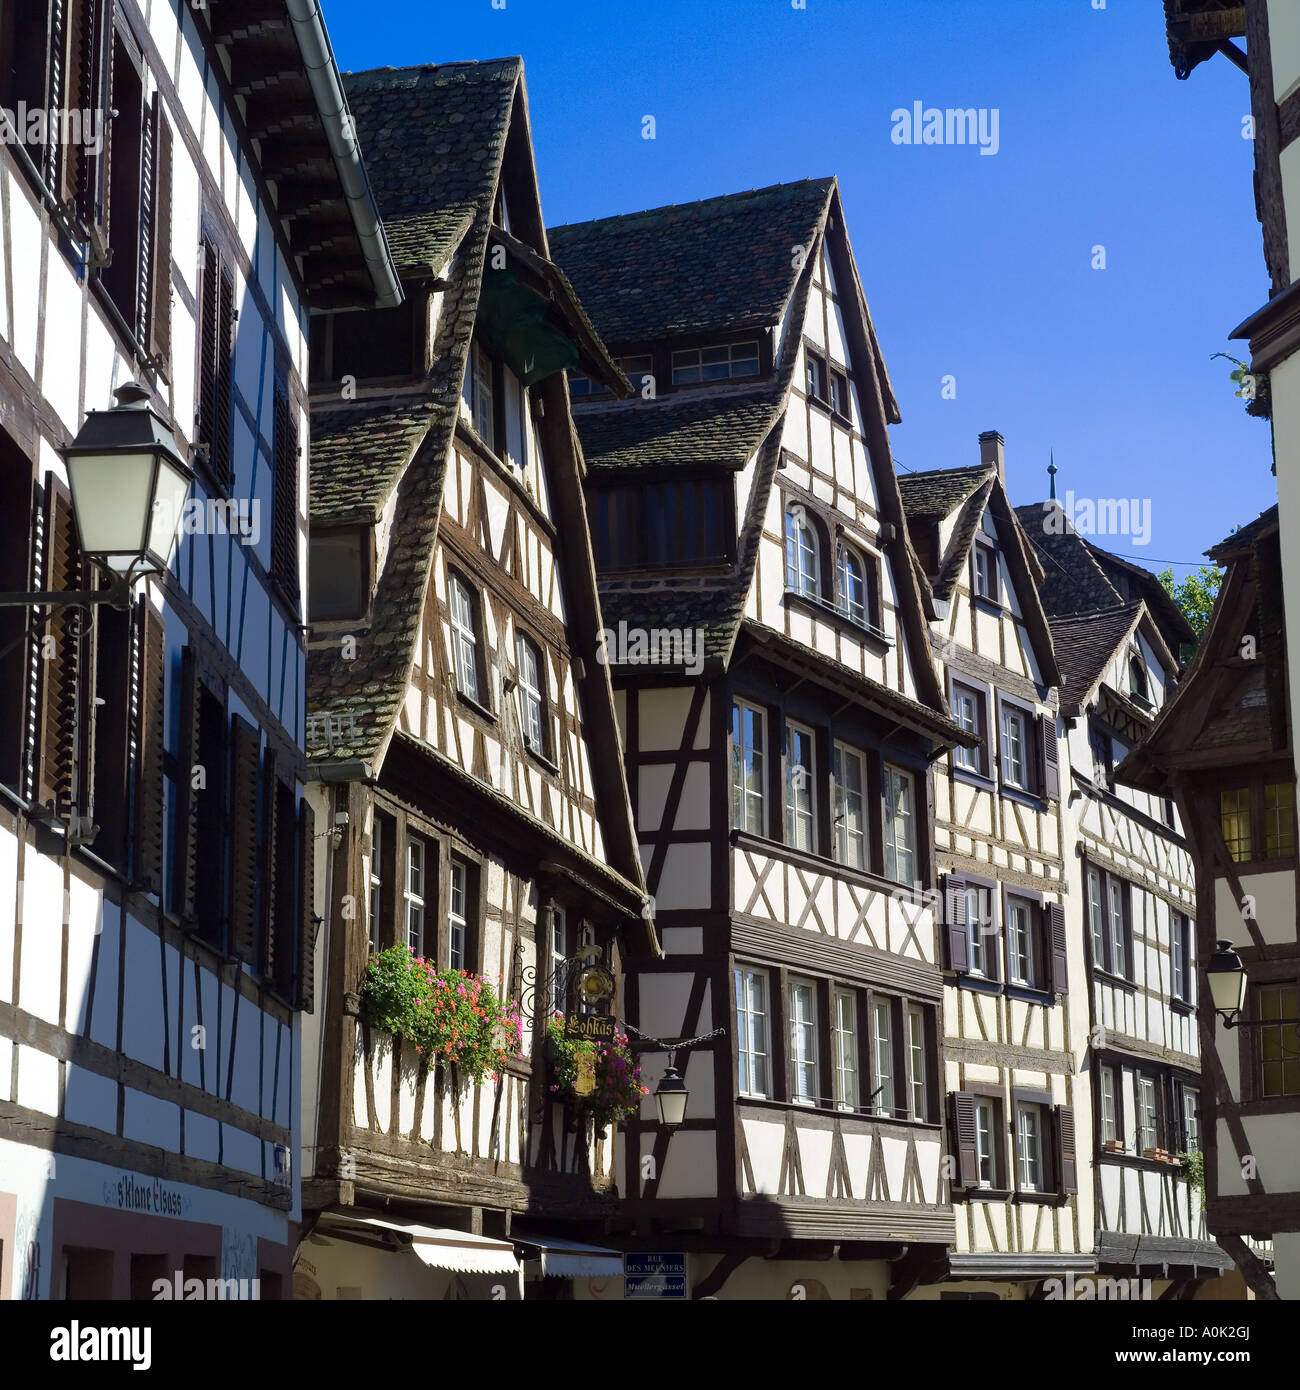 16th Century French Home - renaissance-half-timbered-houses-16th-century-la-petite-france-district-A0K2GJ_Wonderful 16th Century French Home - renaissance-half-timbered-houses-16th-century-la-petite-france-district-A0K2GJ  Picture_20861.jpg